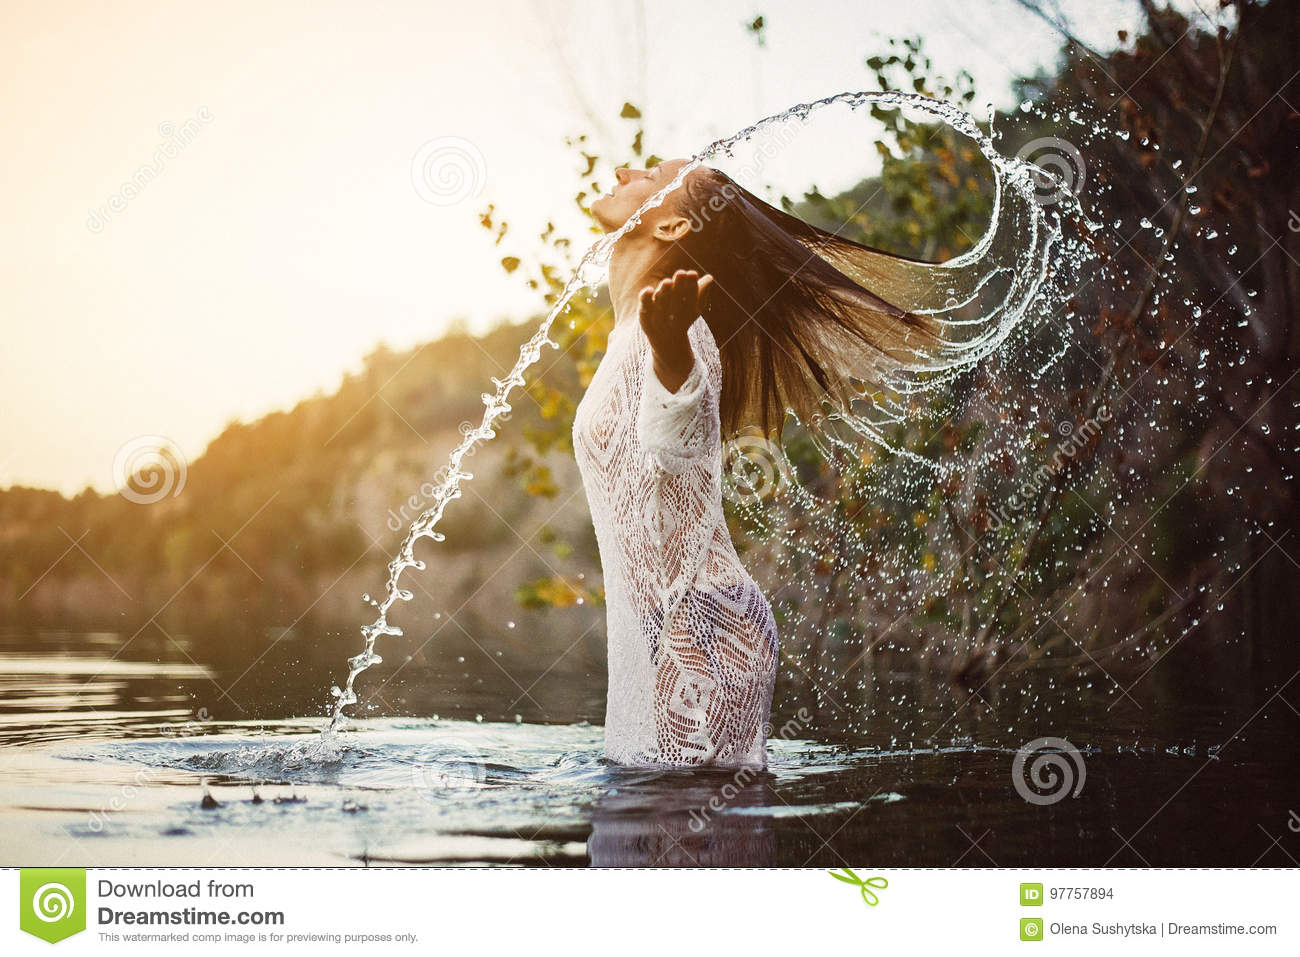 Download Beauty Model Girl Splashing Water With Her Hair. Teen Girl Swimming And Splashing On Summer Beach. Stock Photo - Image of breeze, beauty: 97757894